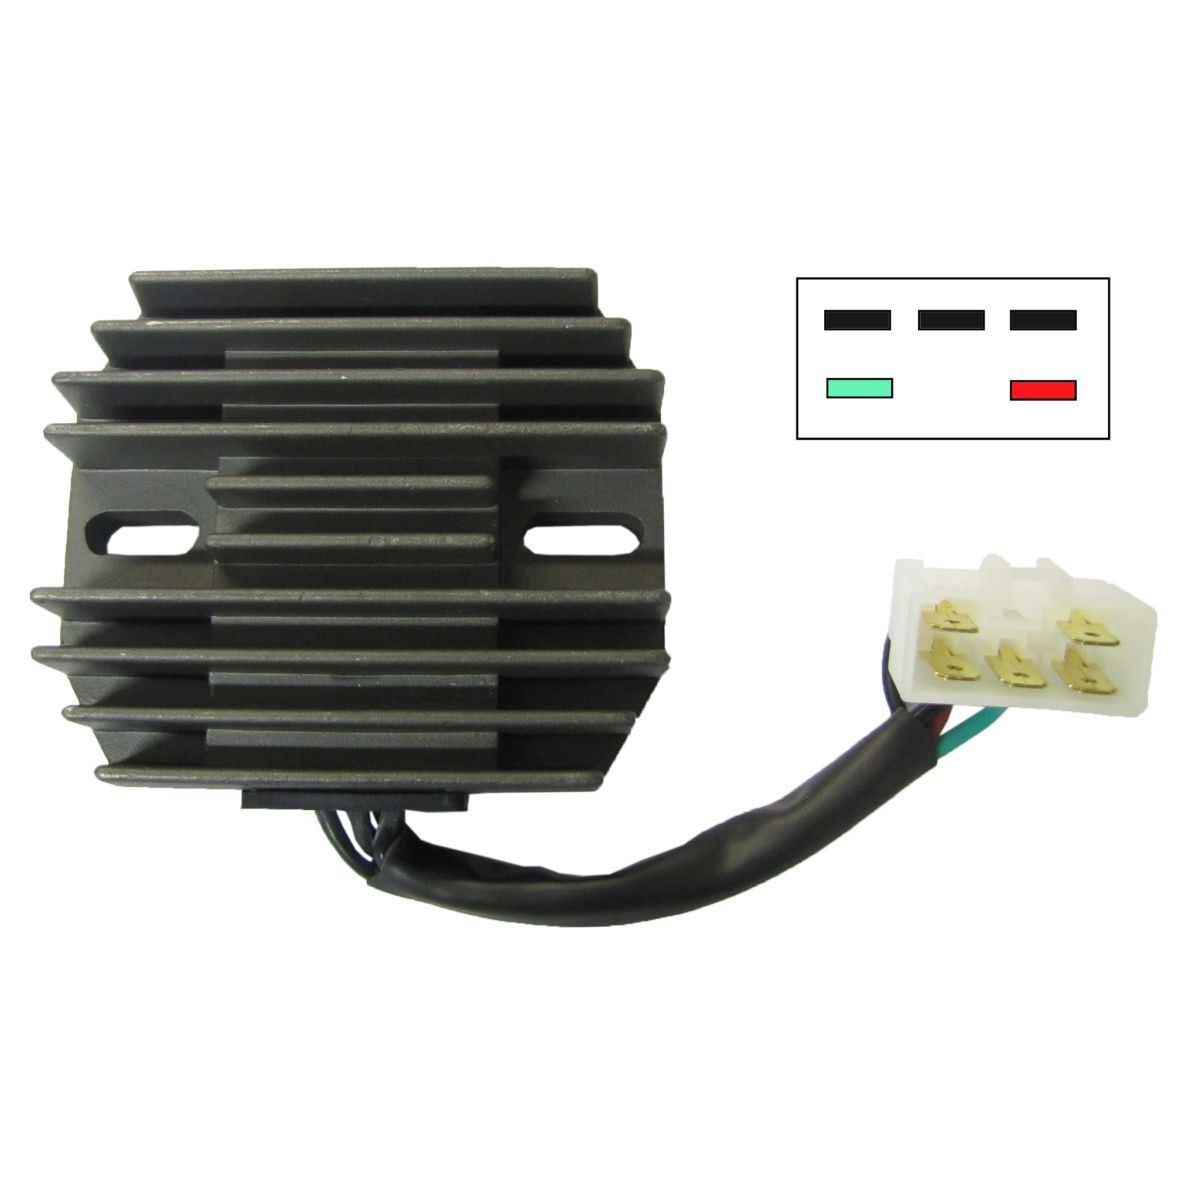 Regulator Rectifier Chinese For 2003 Suzuki Gsx 1300 R K3 Hayabusa Fuse Box Location 1 Of 3free Shipping See More